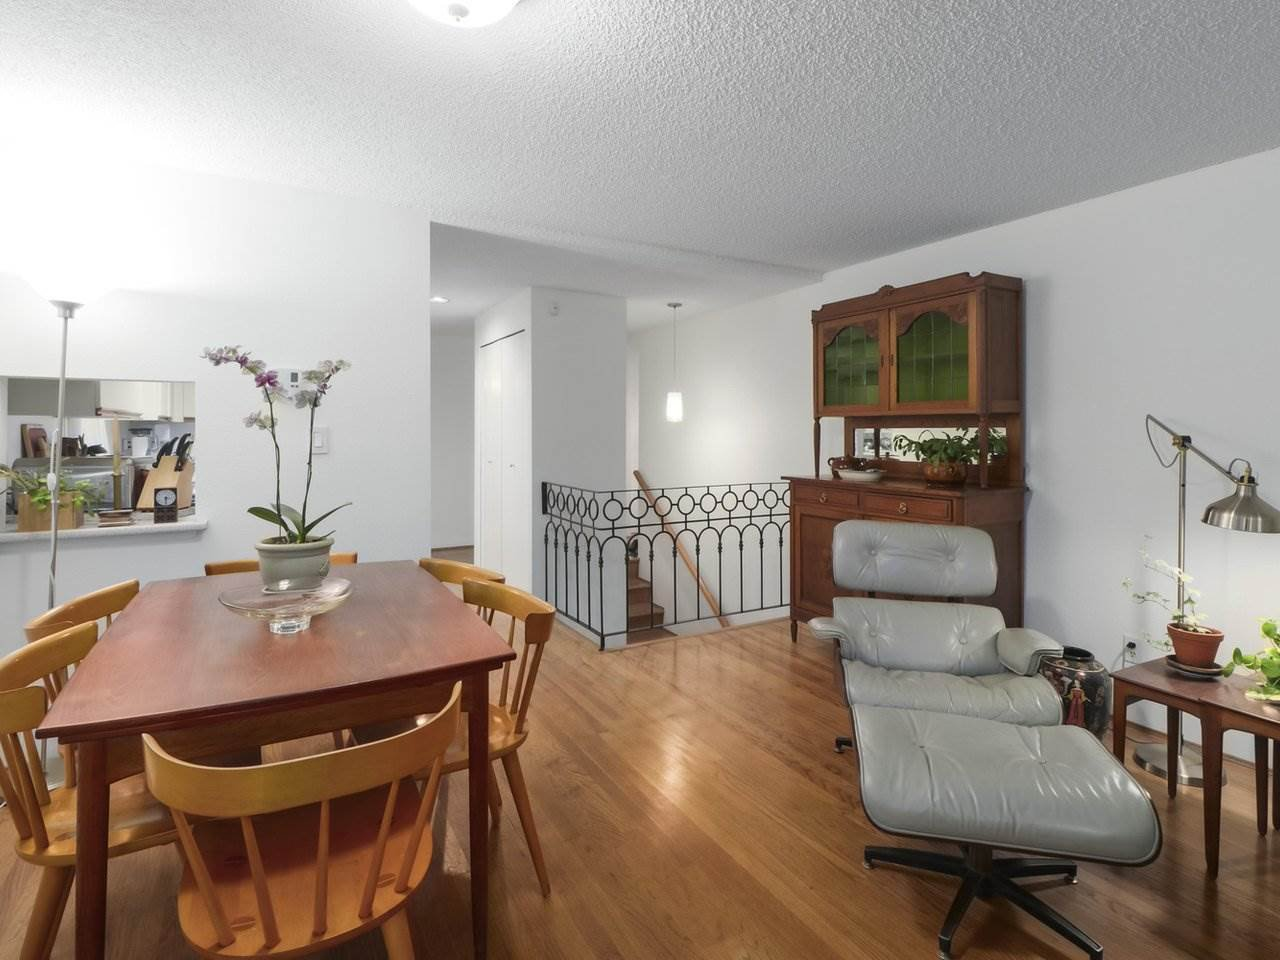 """Photo 4: Photos: 103 1943 E 1ST Avenue in Vancouver: Grandview Woodland Townhouse for sale in """"THE VAULT"""" (Vancouver East)  : MLS®# R2465391"""